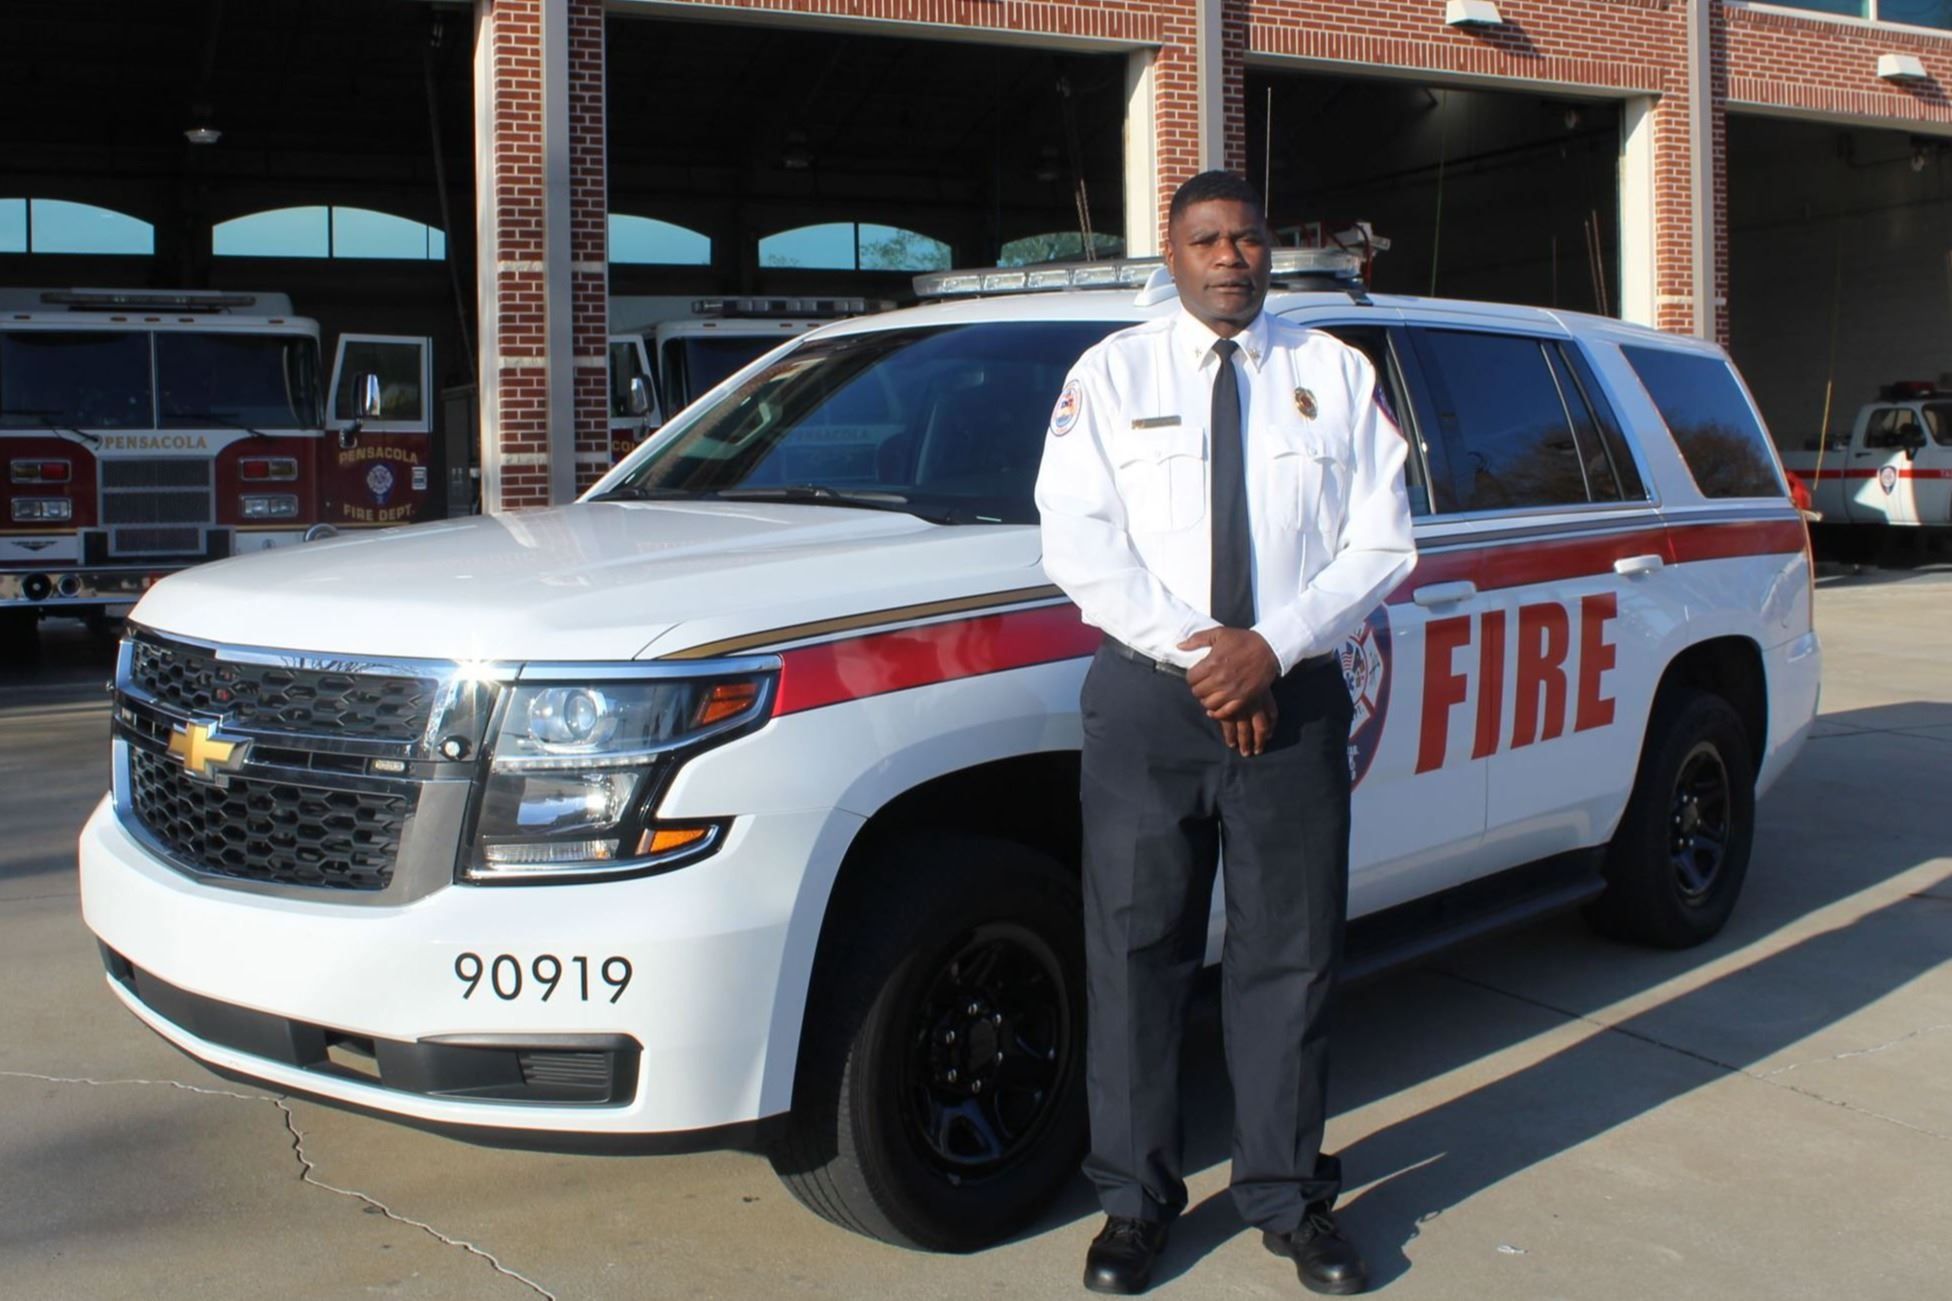 A Watch Battalion Chief Cedric King 2